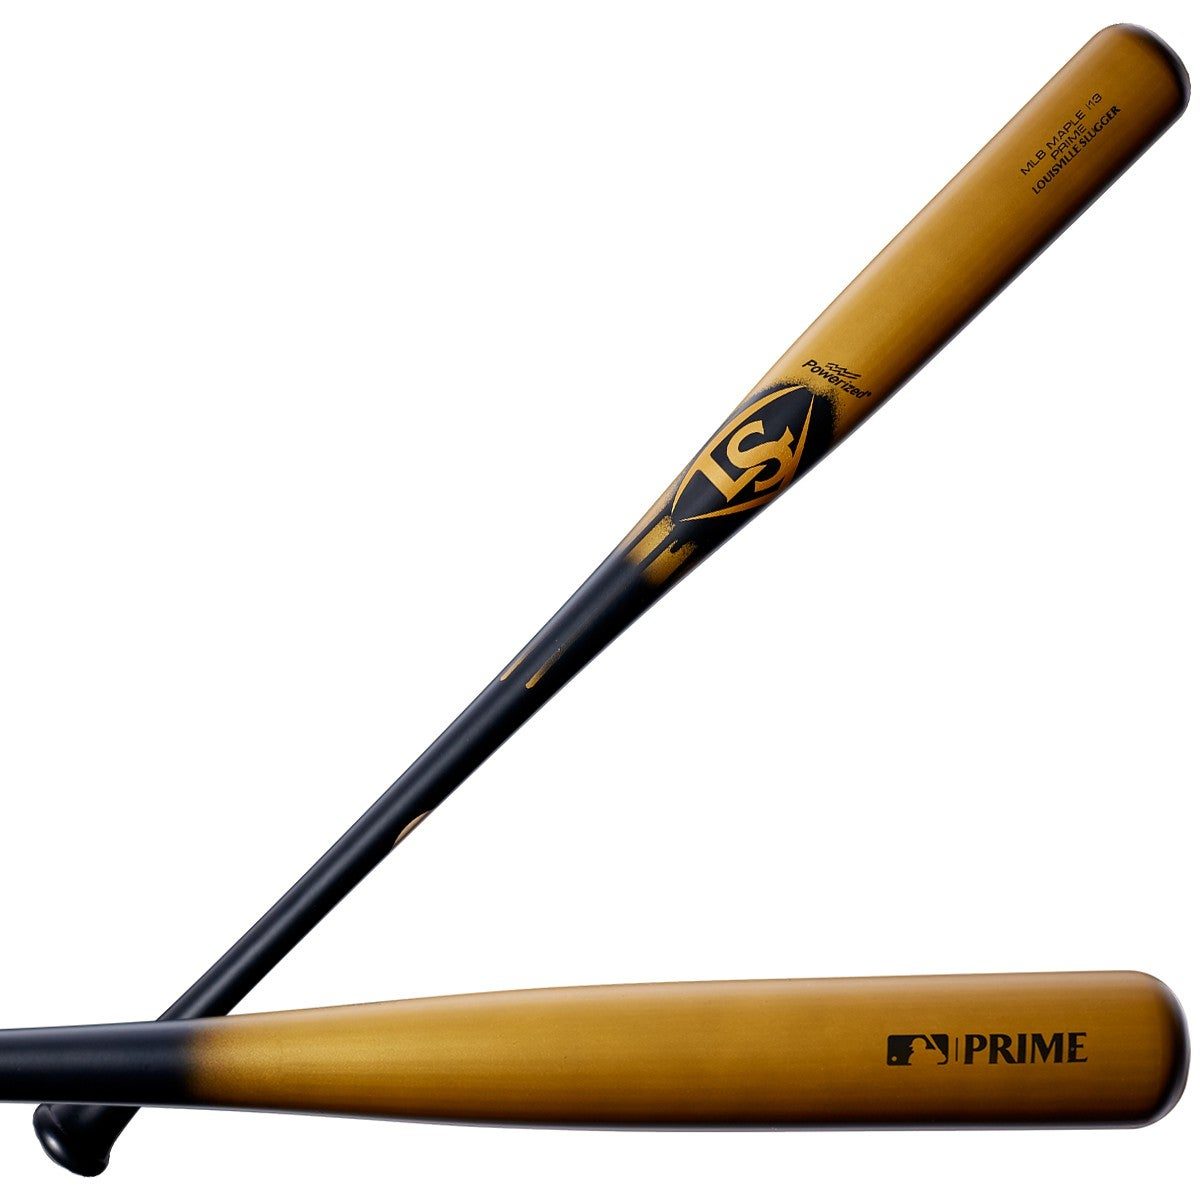 MLB Prime Maple I13 Drip Baseball Bat